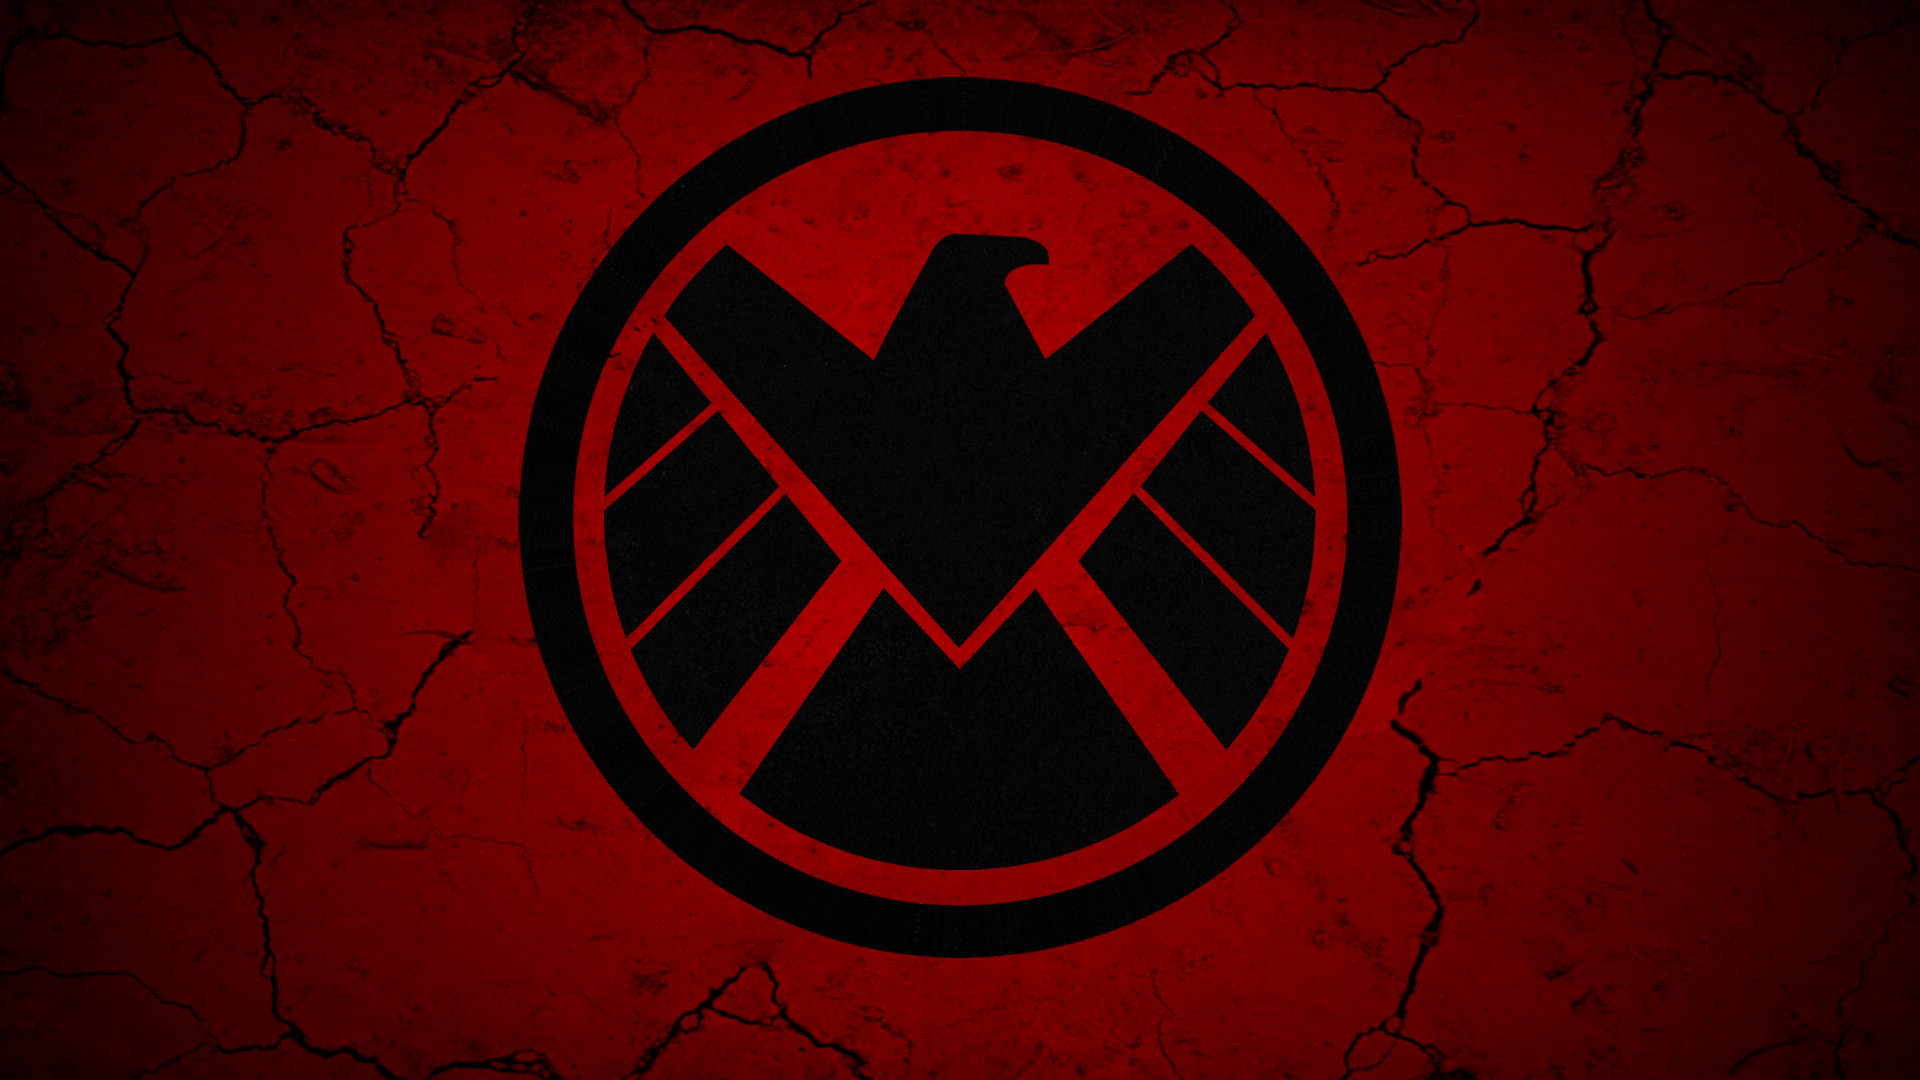 1920x1080 Agents of SHIELD HD Wallpaper - iHD Wallpapers 0 HTML code.  agents_of_shield_season_2_wallpaper__by_masteroffunny-d8467ud .